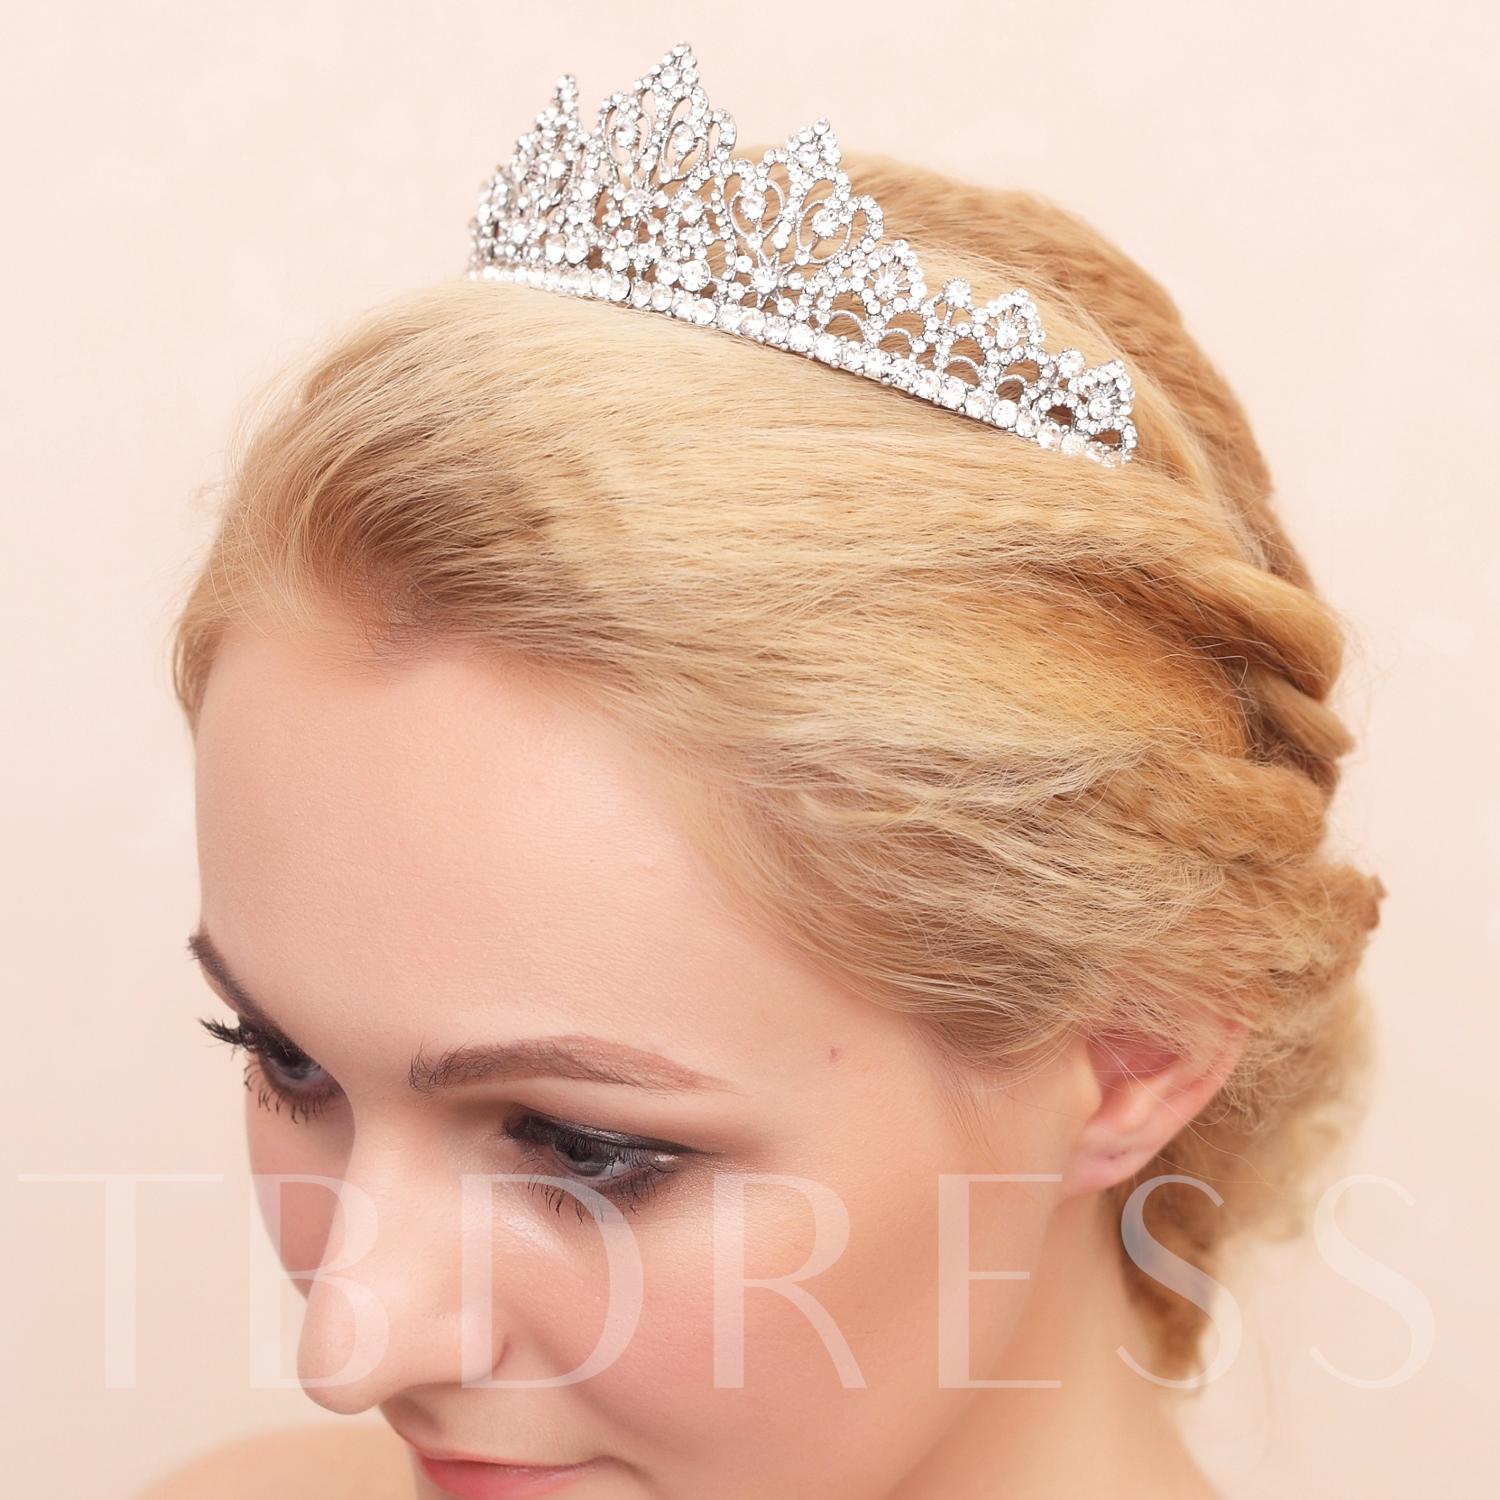 Celebrity Alloy with Star Shaped Rhinestone Wedding Bridal Tiara